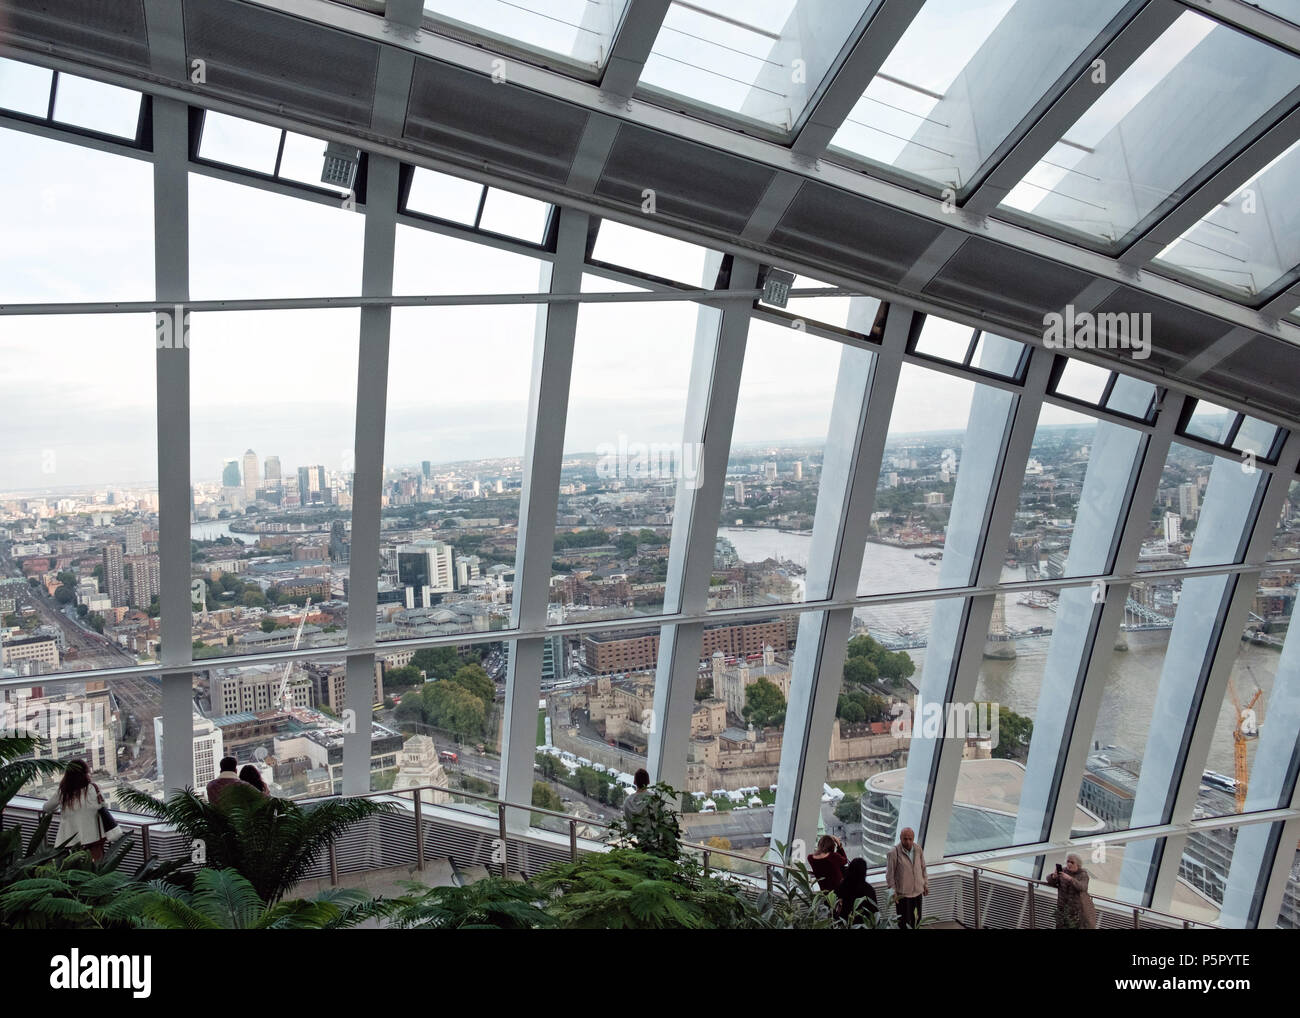 Large windows with view of London from the Sky Garden, 20 Fenchurch St. Known as the Walkie Talkie. People on stairs, plants in foreground. Horizontal - Stock Image